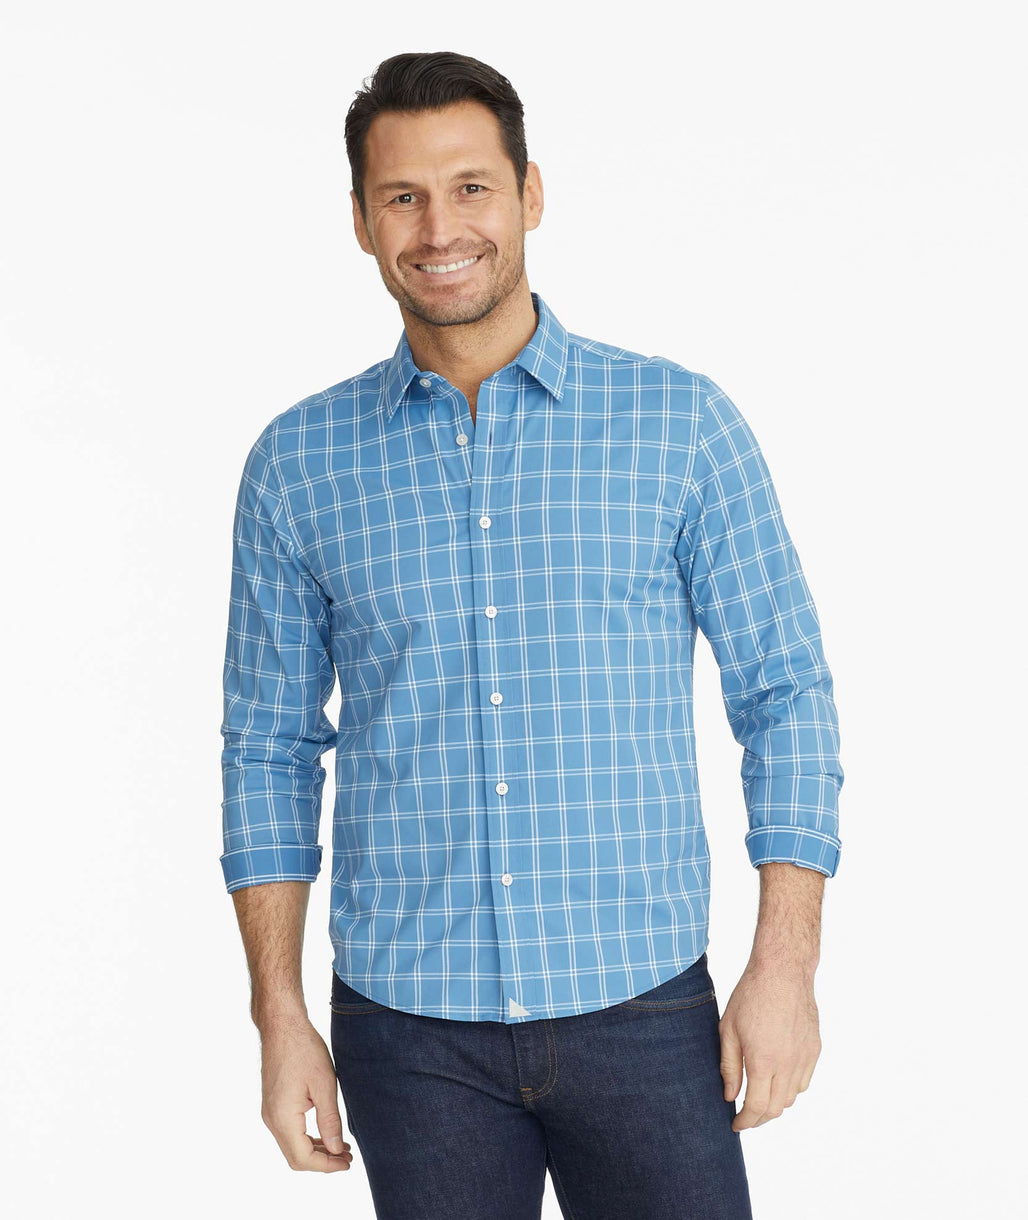 Model wearing a Blue Wrinkle-Free Performance Garrett Shirt